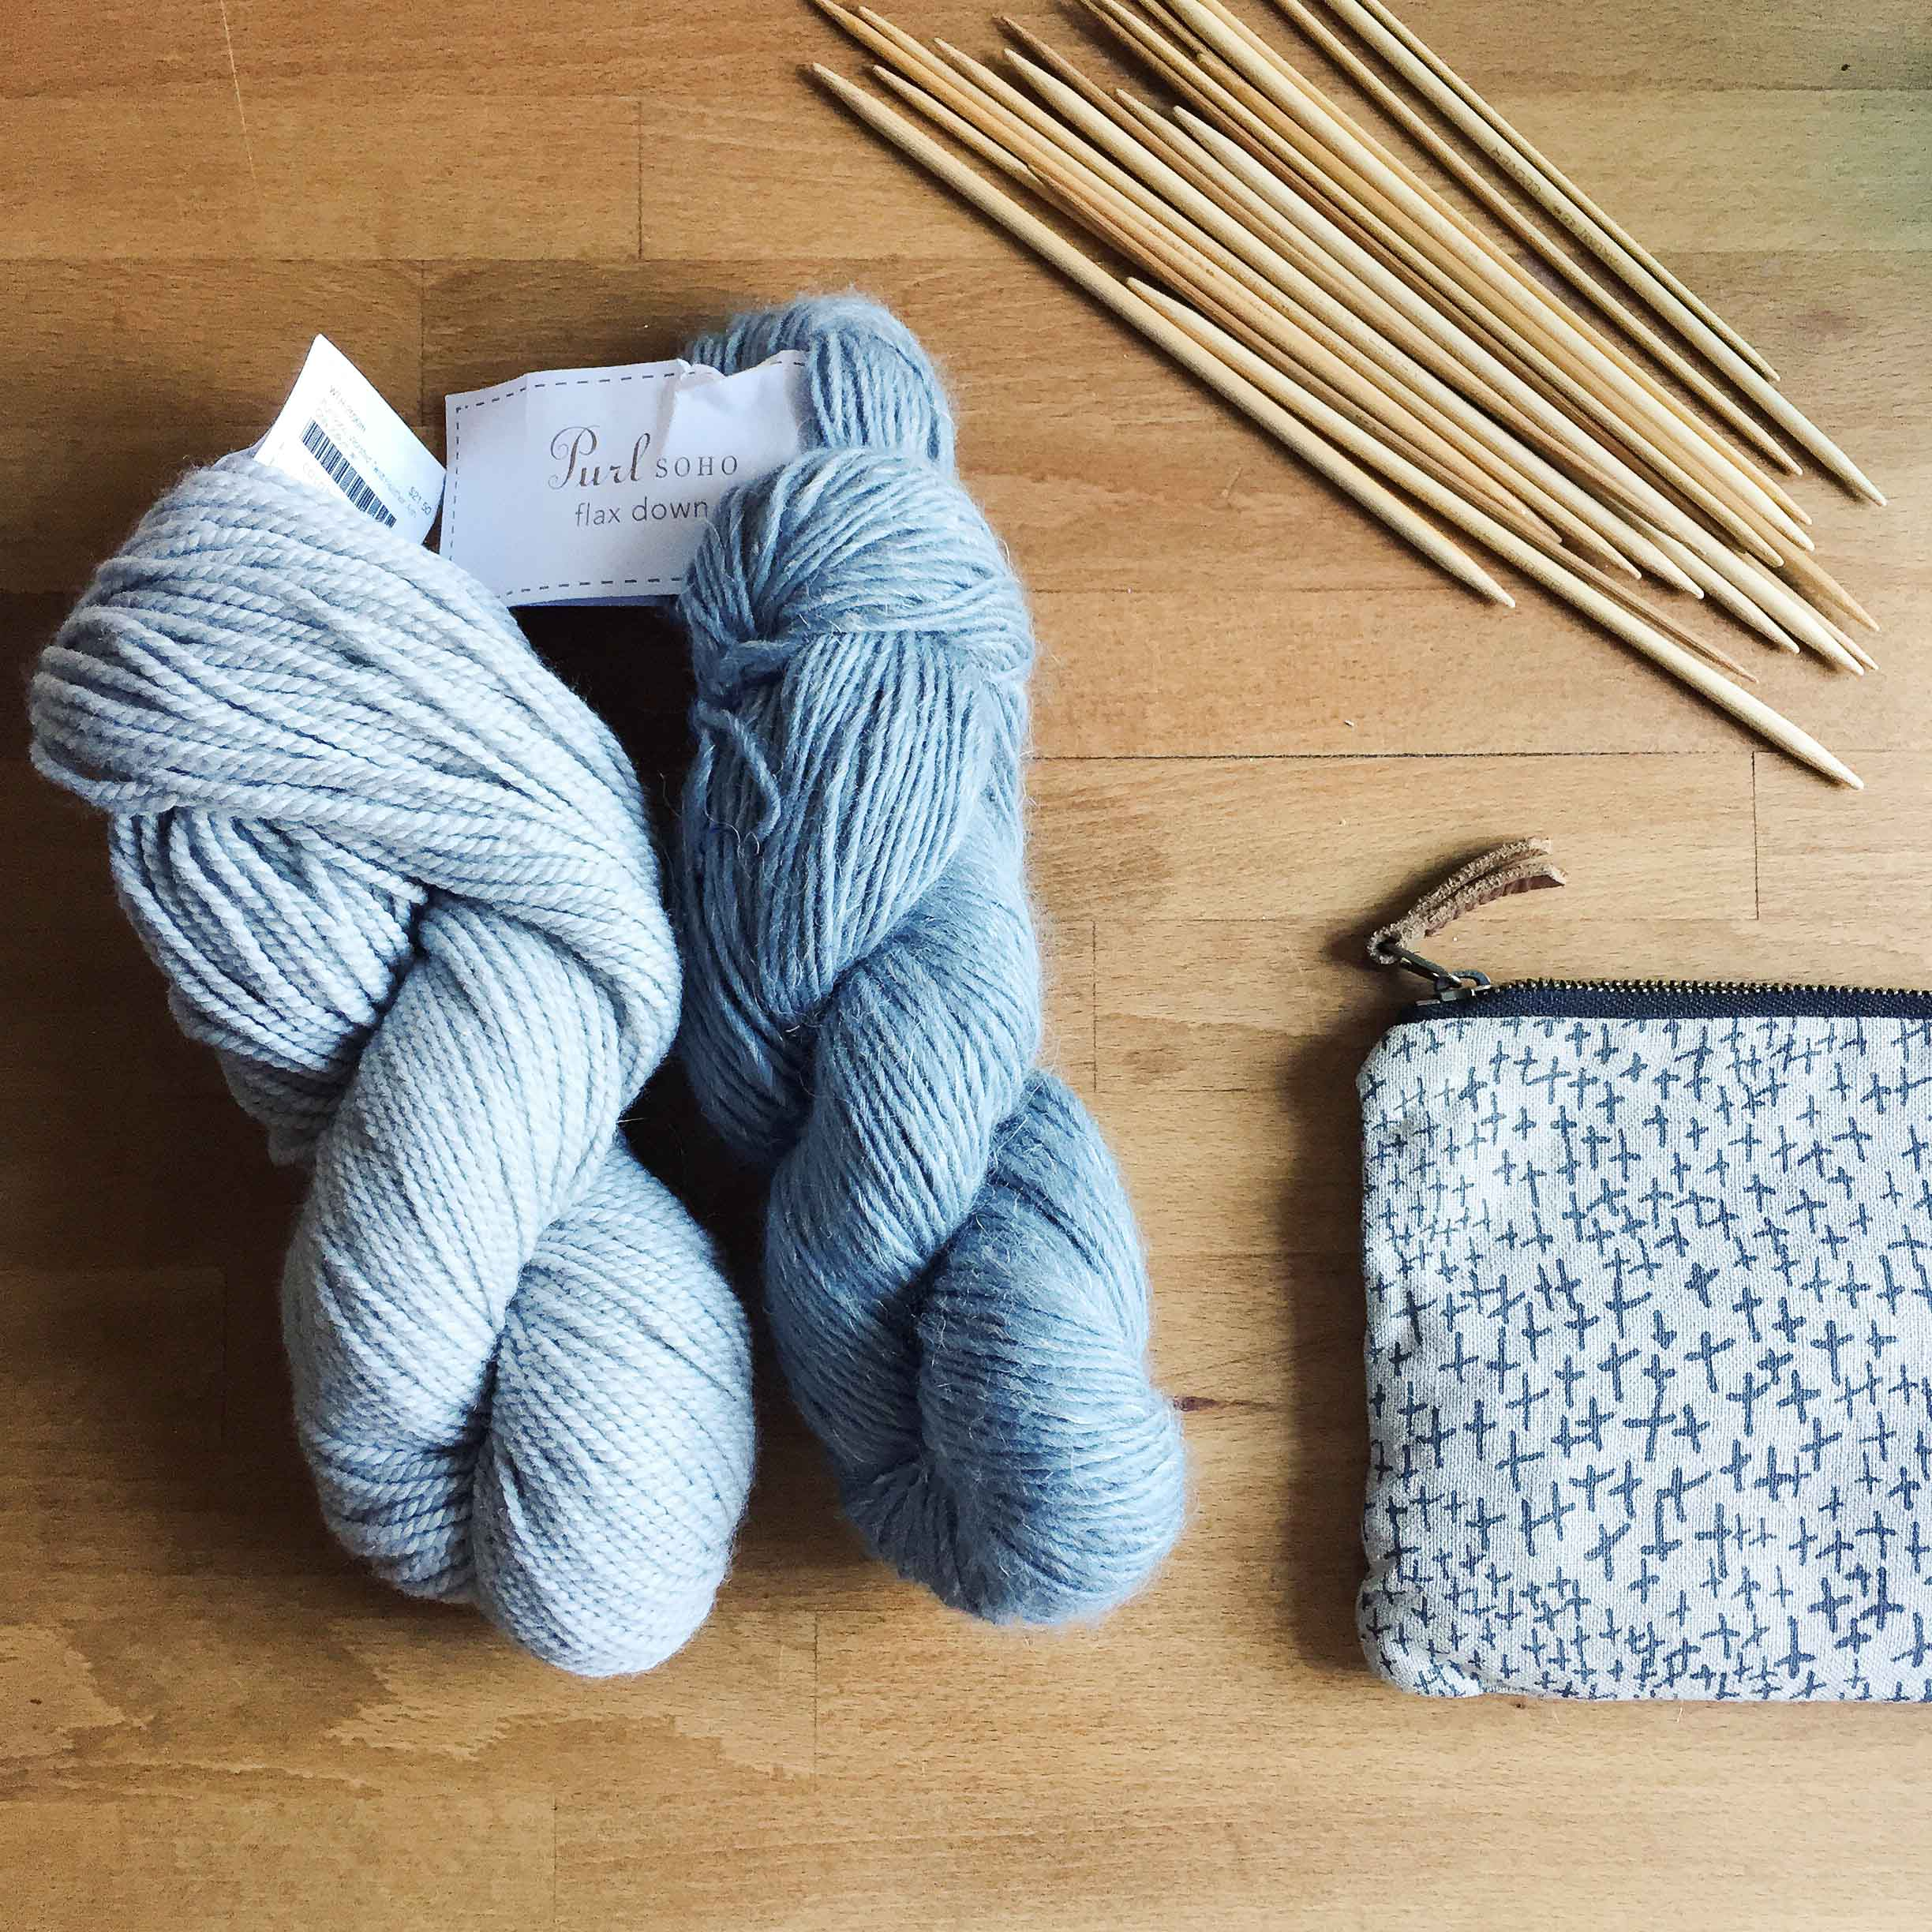 I  purchased  these two skeins at Purl Soho to give their yarn a trial. On the left is their Worsted and on the right is their beautiful Flax Down!